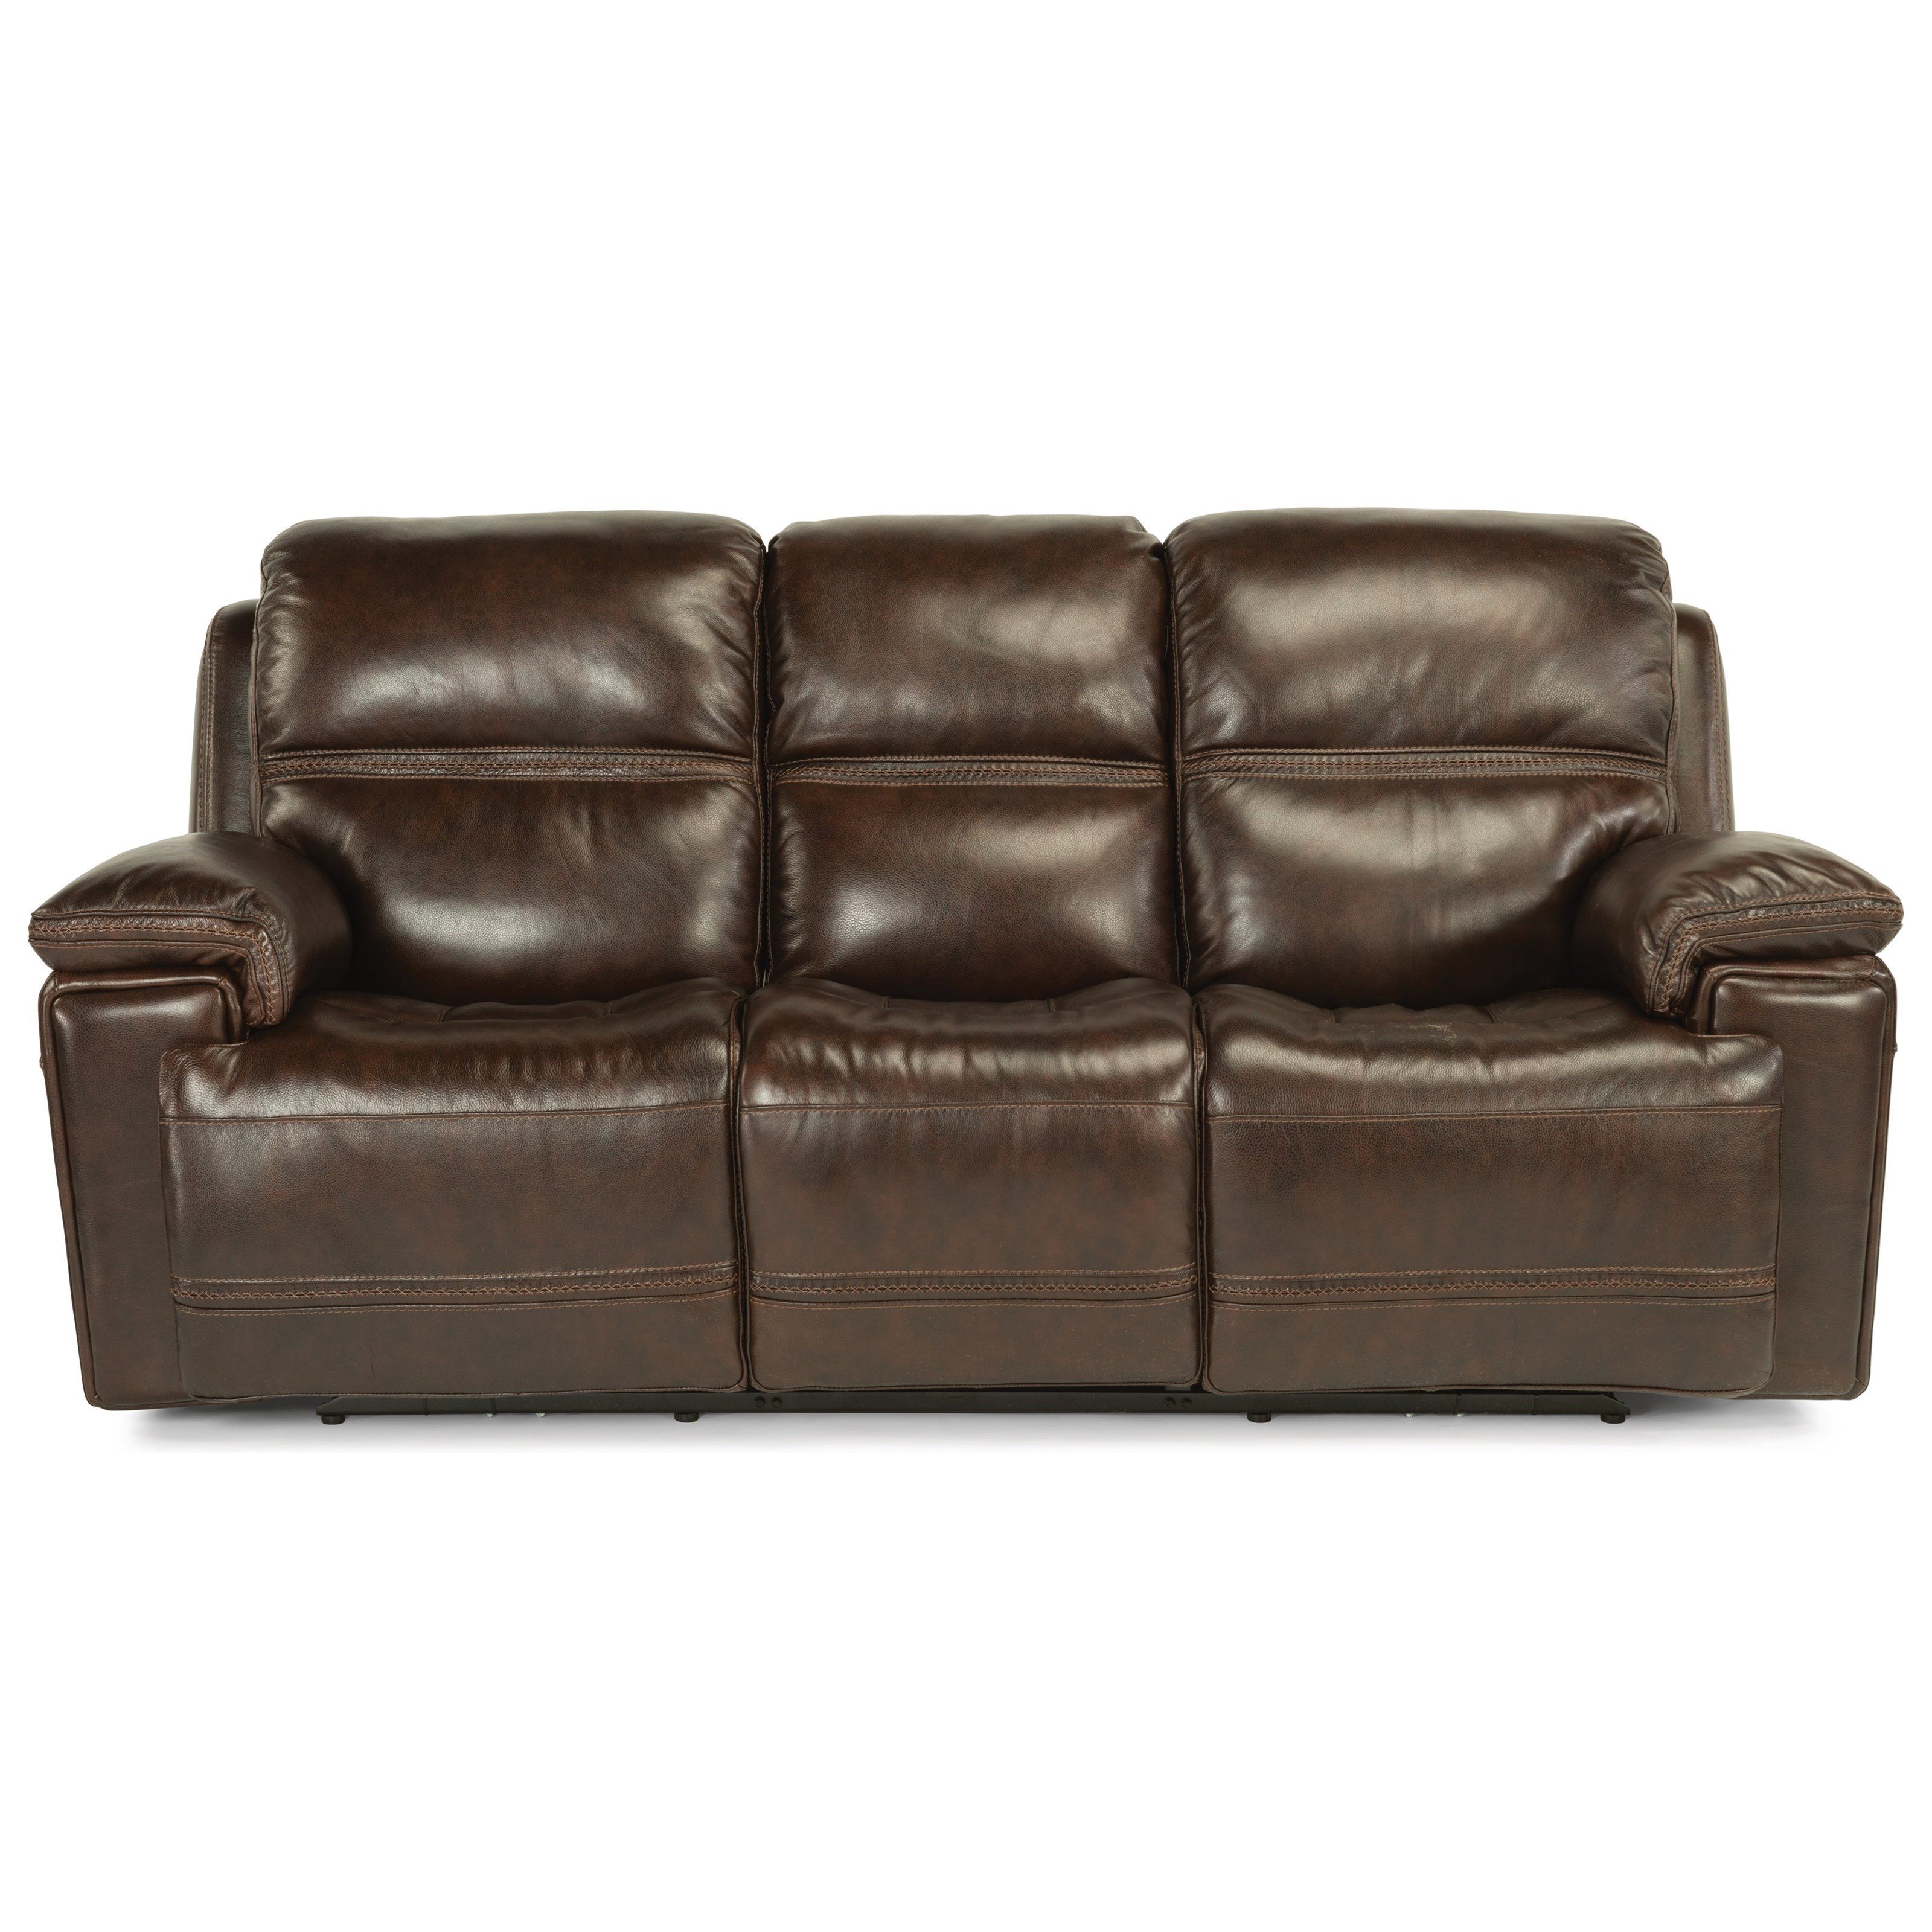 Power Rcl Leather Sofa w/ Pwr Headrest